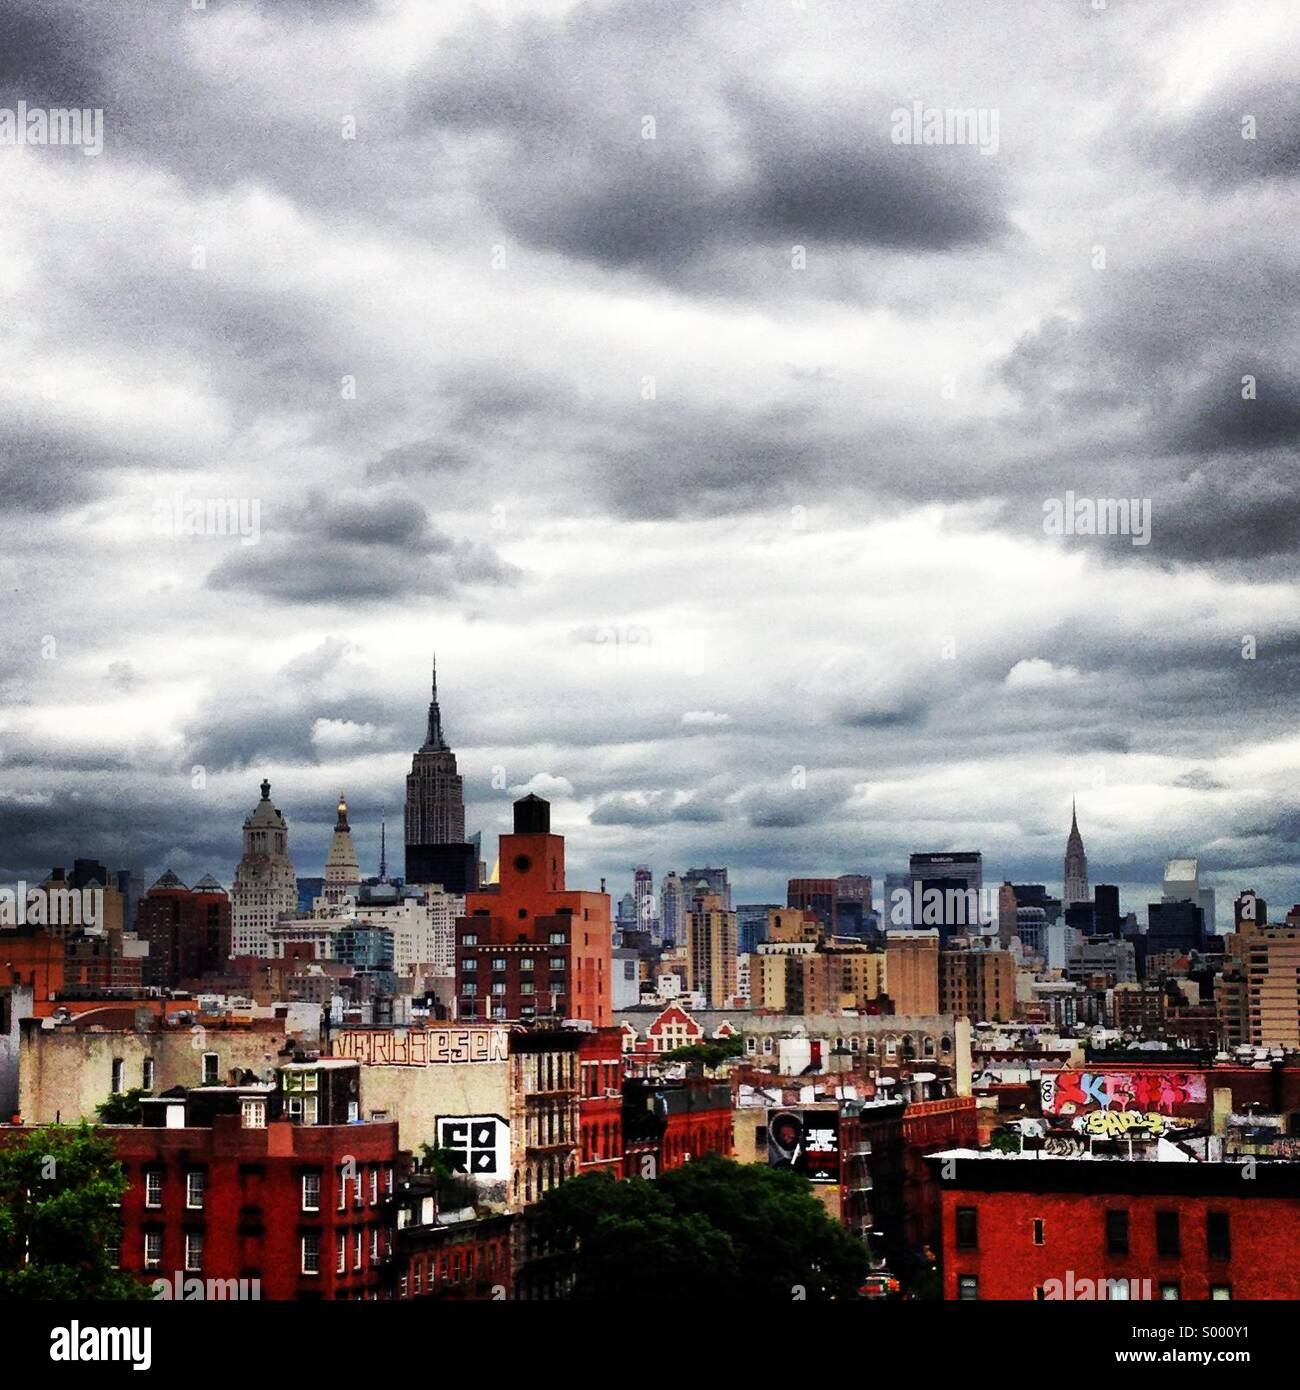 New York City skyline taken from rooftop of Thompson LES hotel - Stock Image